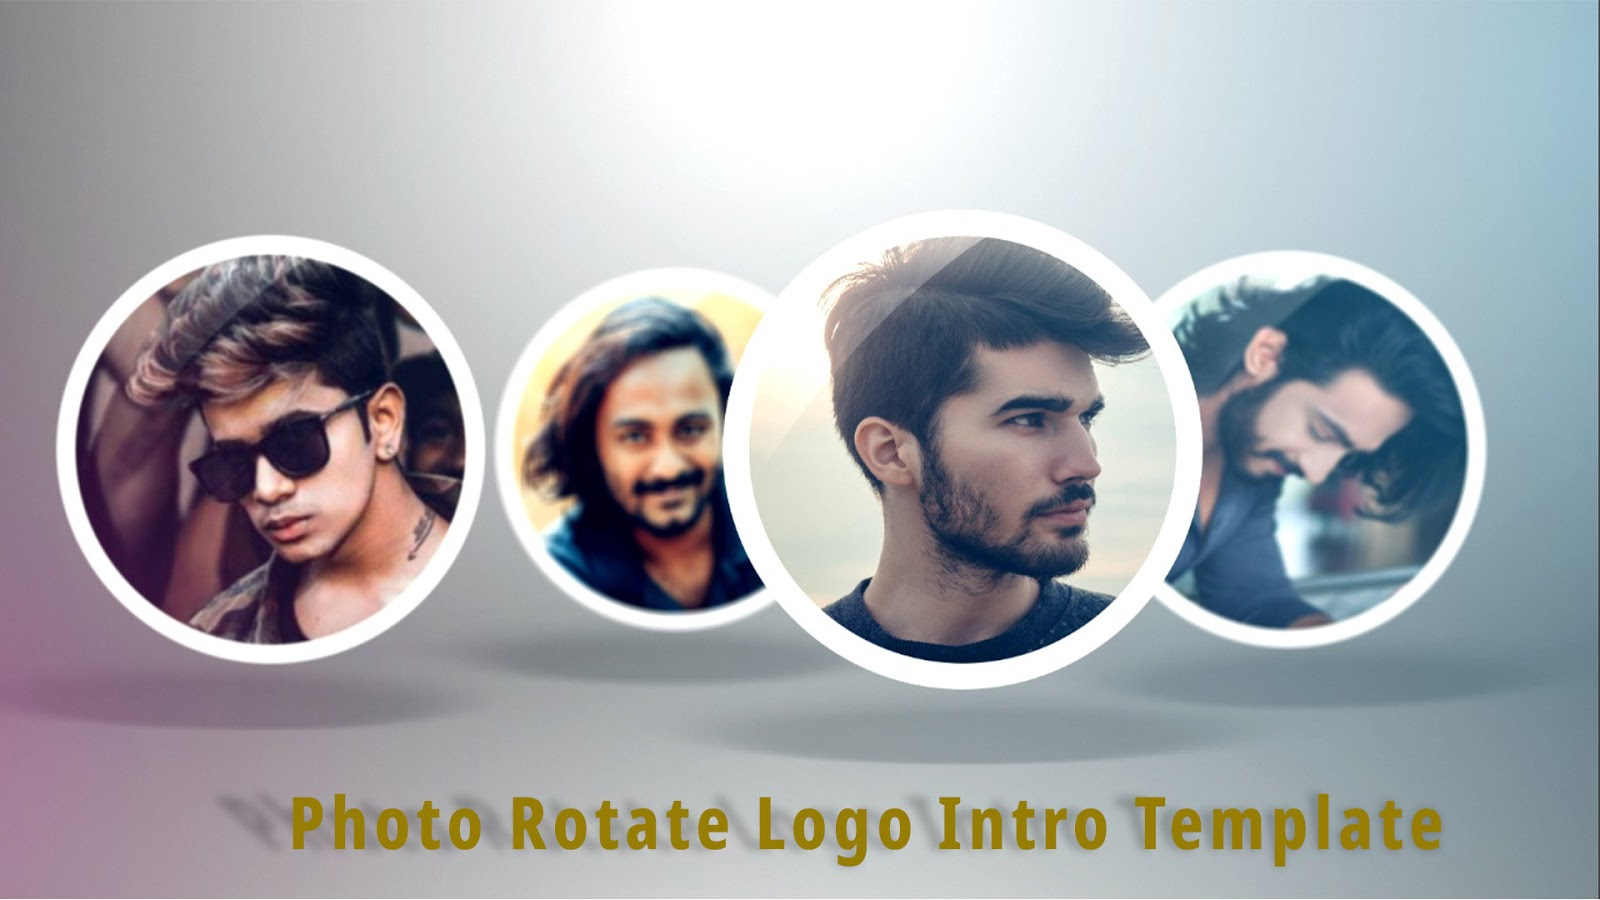 Photo Rotate Logo Intro Template - Free After Effects Intro Template